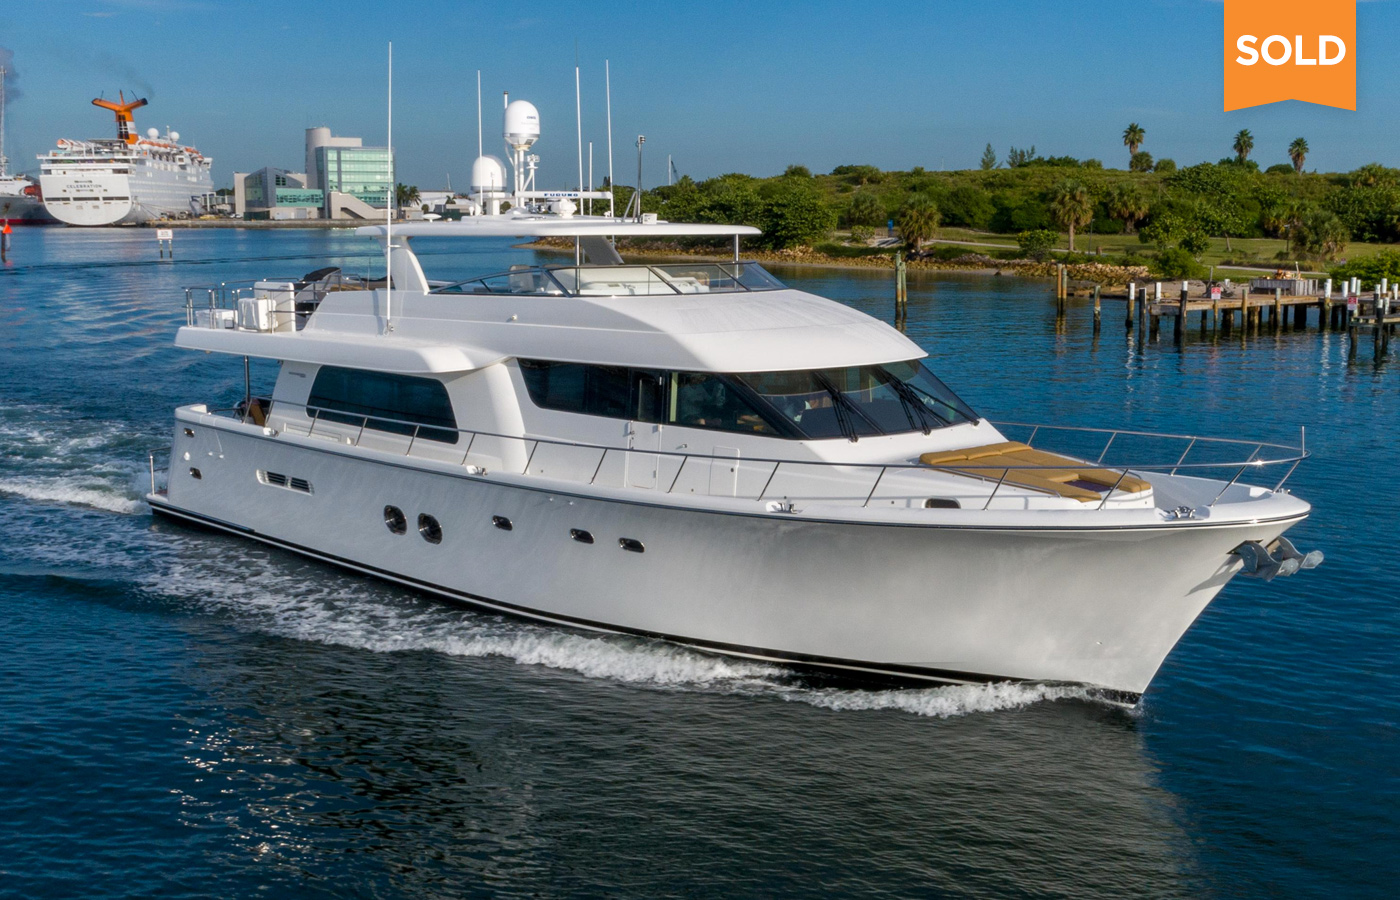 85 Pacific Mariner Motor Yacht Sold By Gary Hardcastle